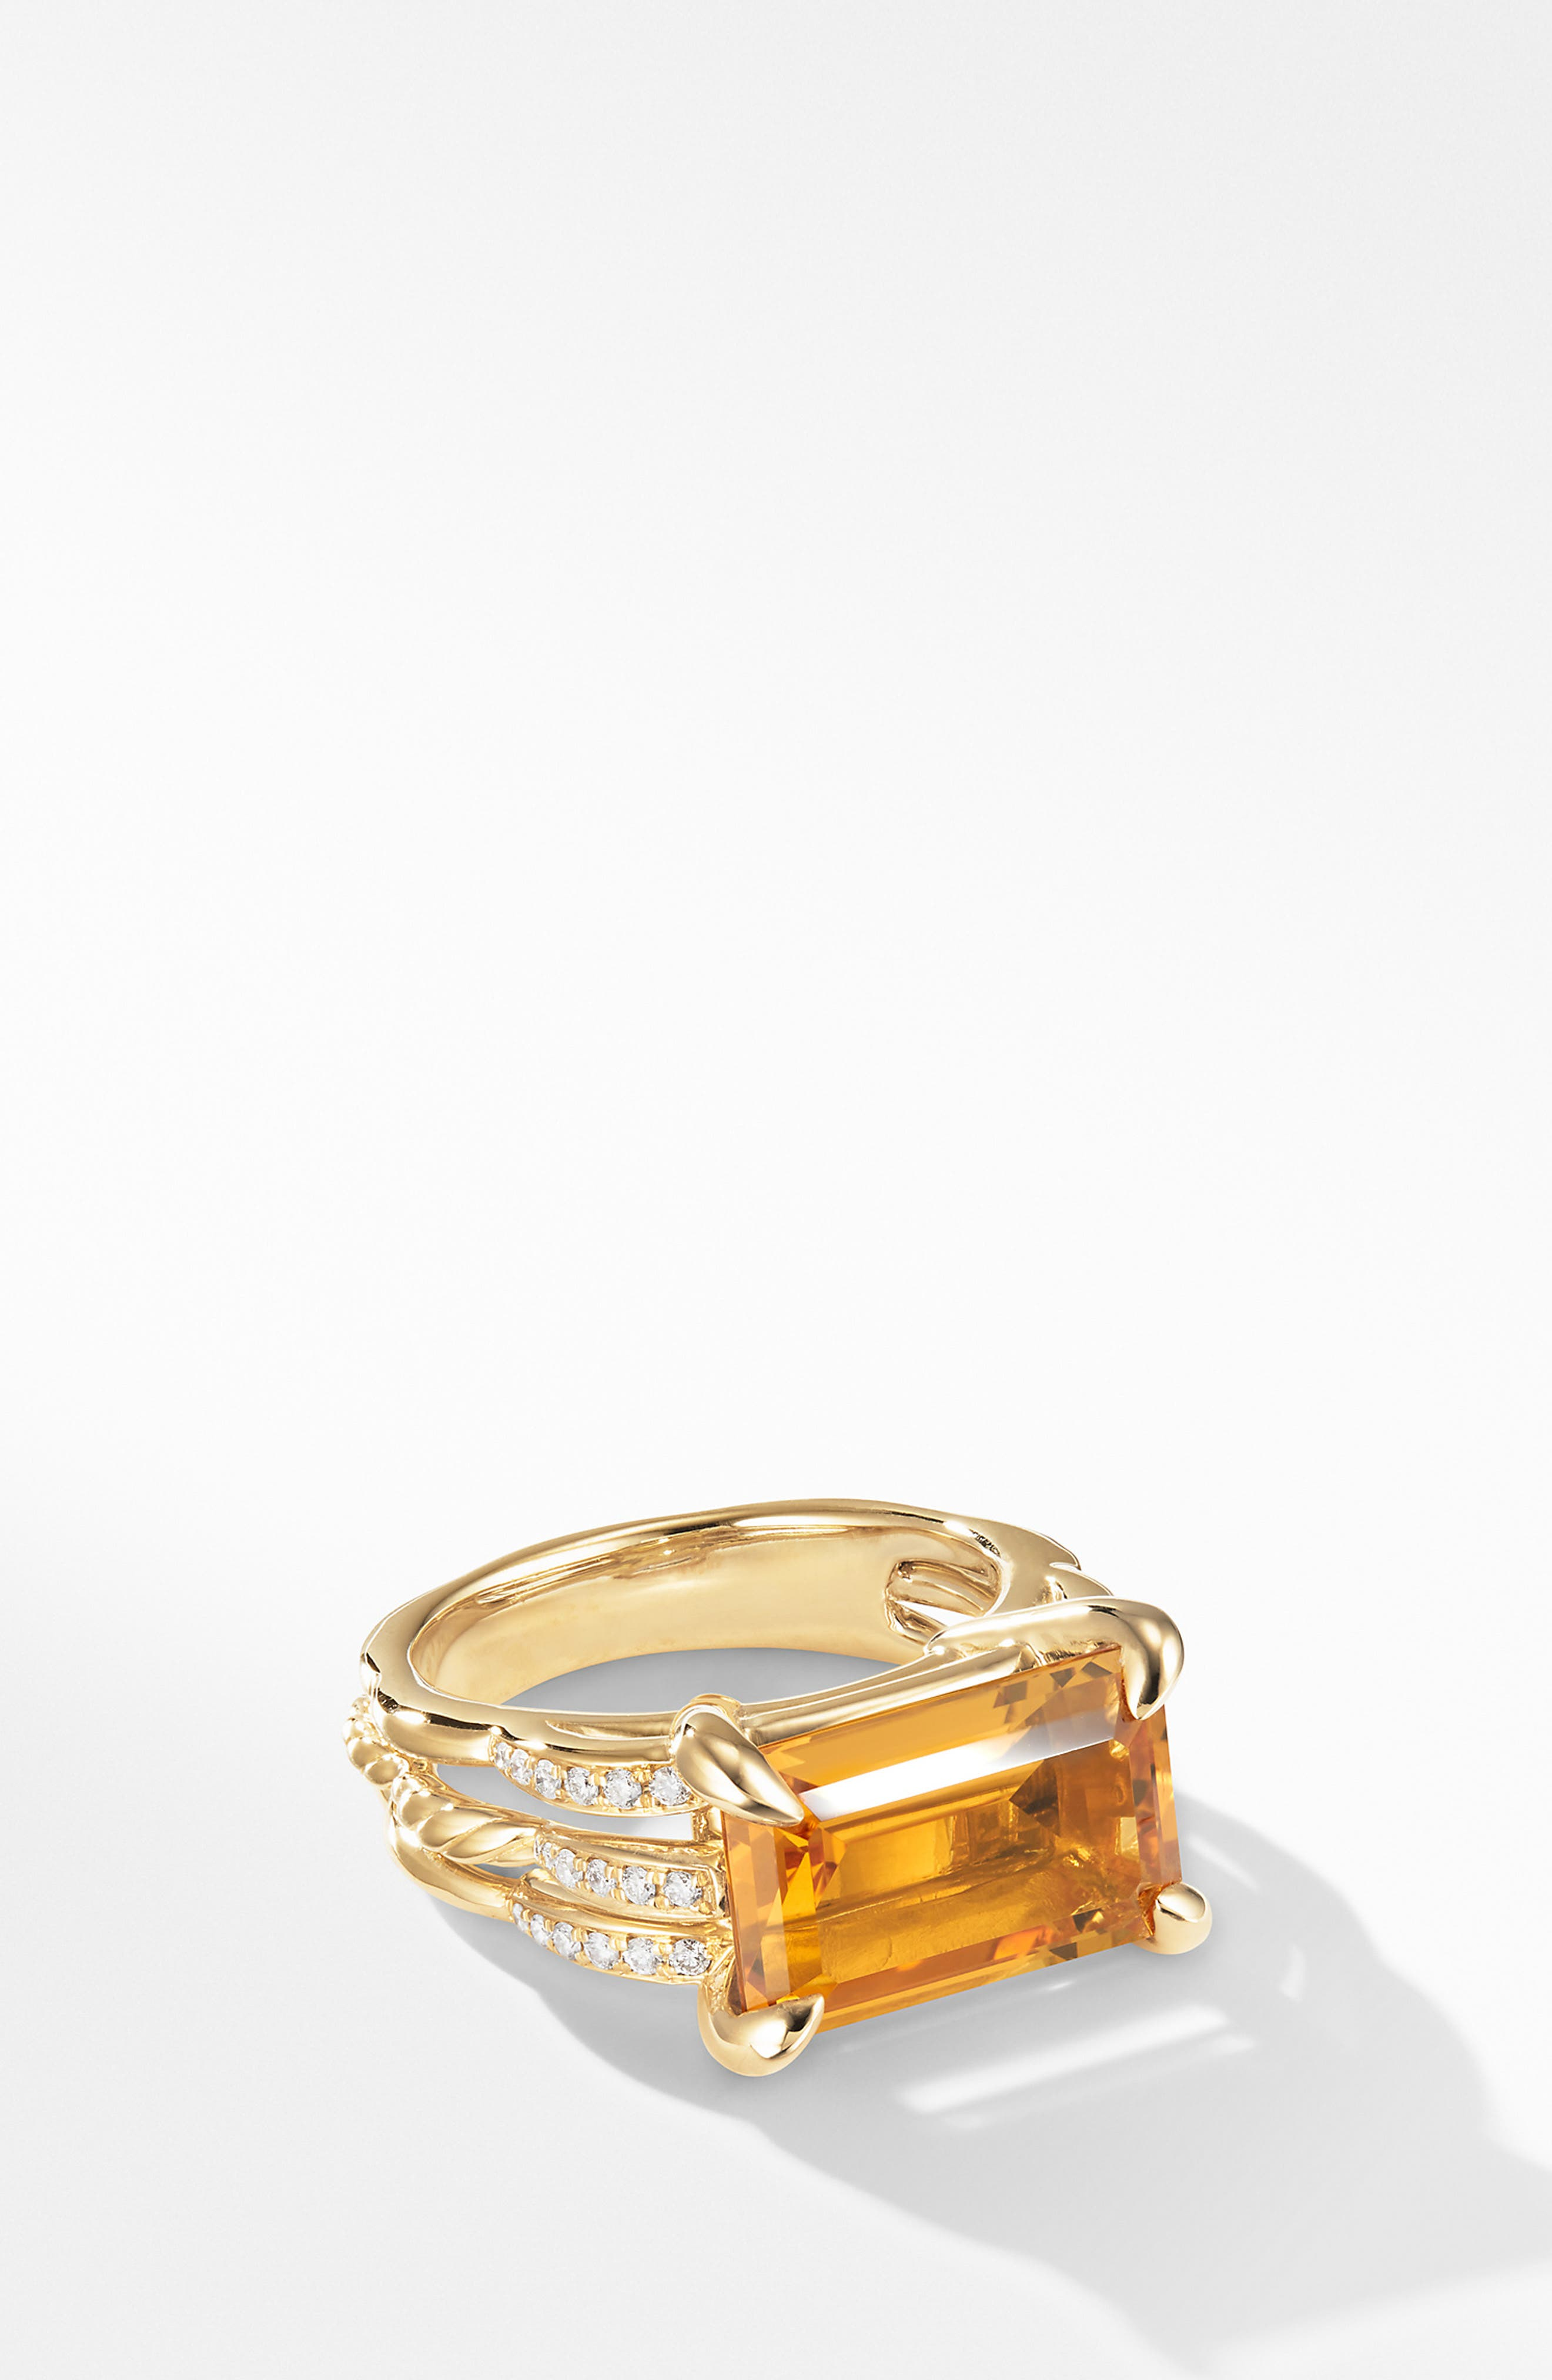 Tides Ring in 18k Gold with Diamonds, Main, color, GOLD/ CITRINE